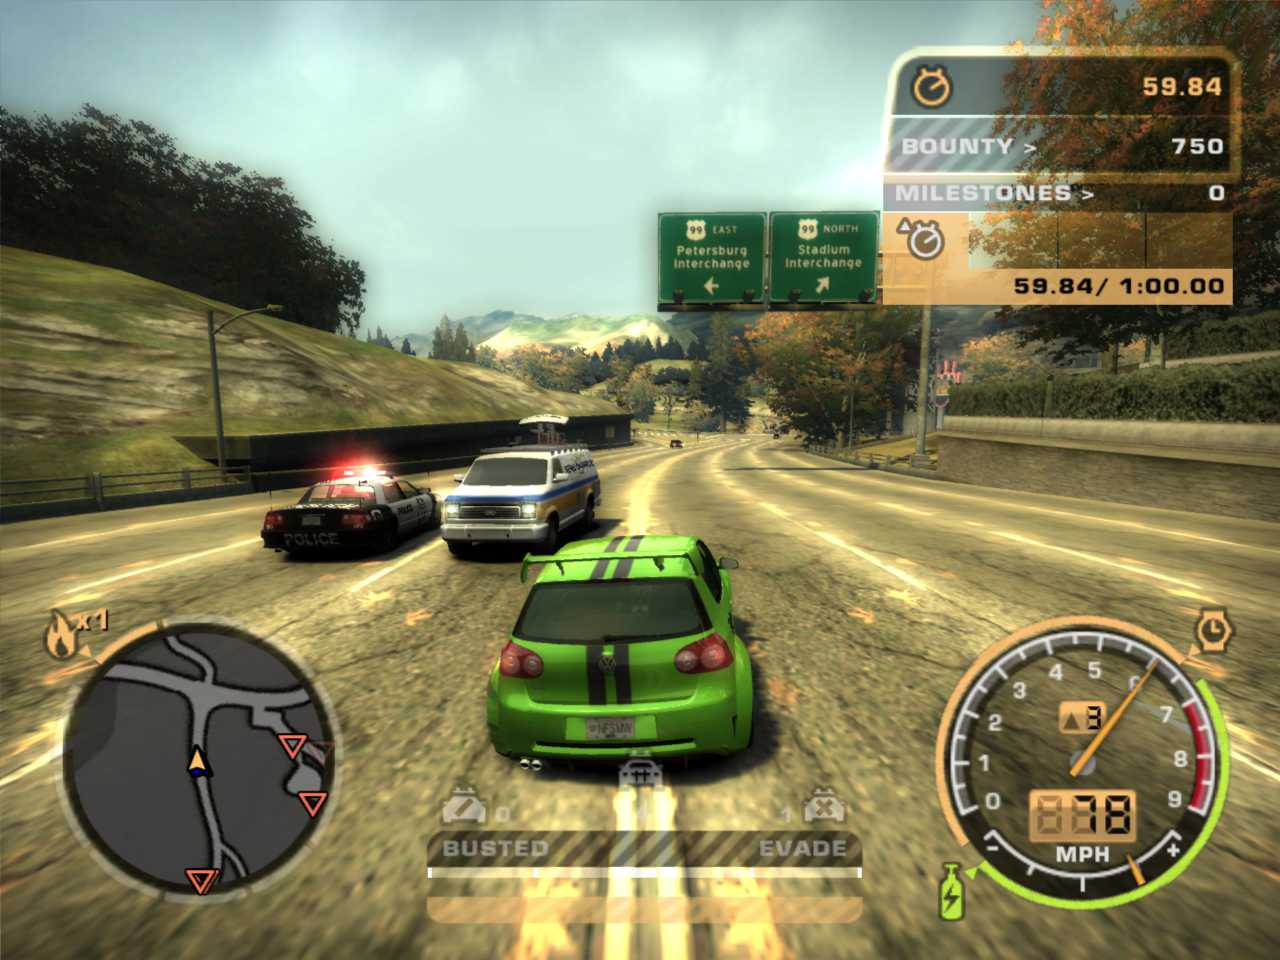 descargar need for speed most wanted para pc completo en espanol gratis 1 link